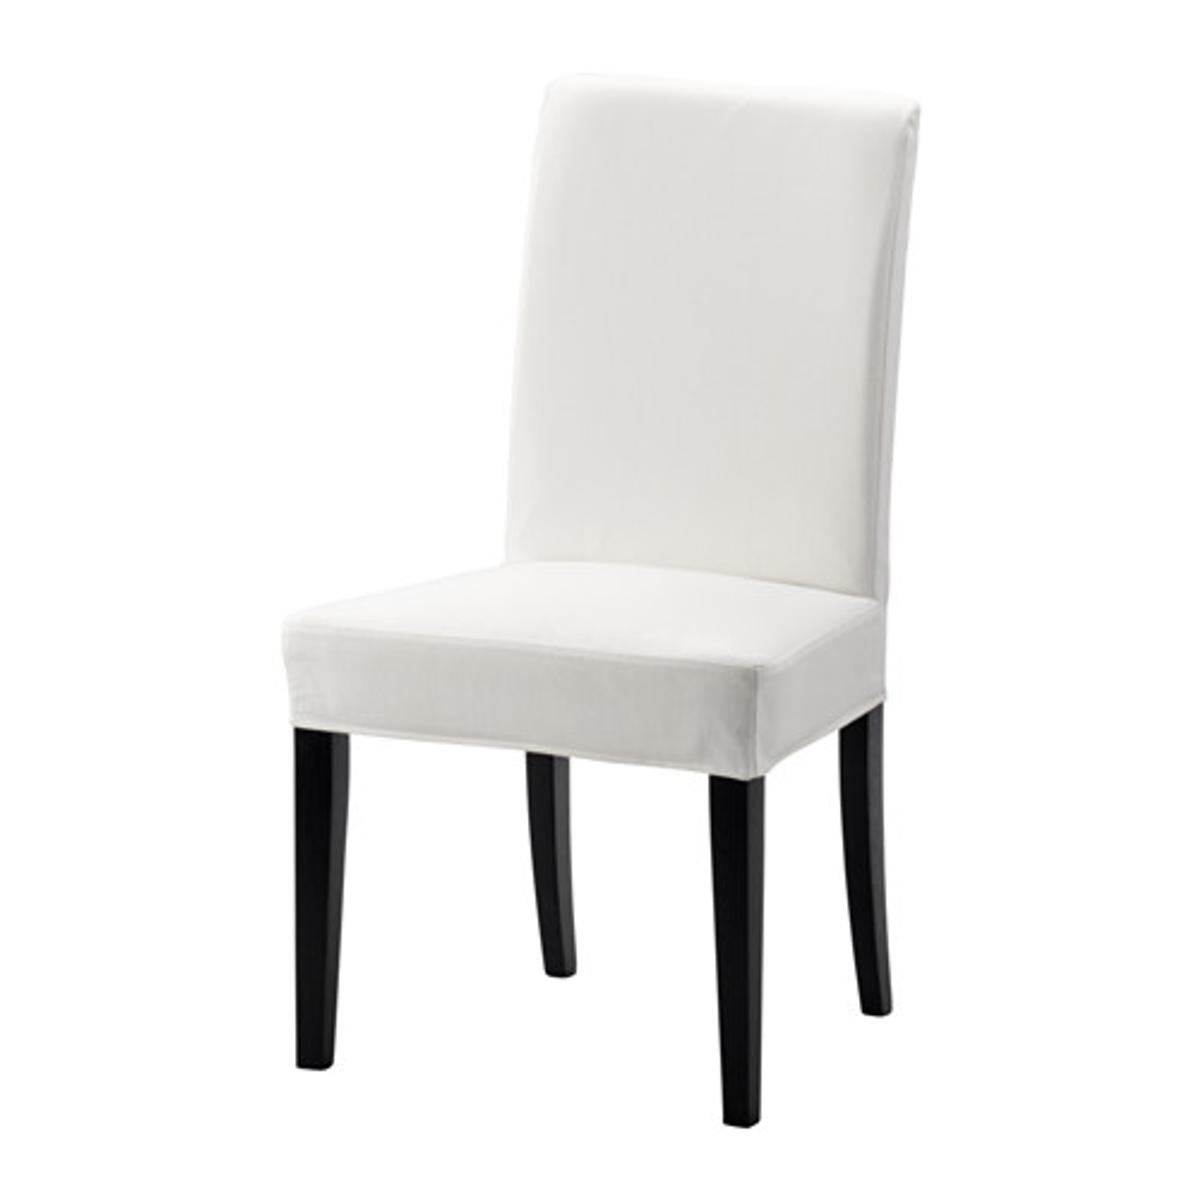 Ikea For Roma Henriksdal Con Bianche 00151 Sedie 34ralj5q 4 In Fodere 6gYybf7